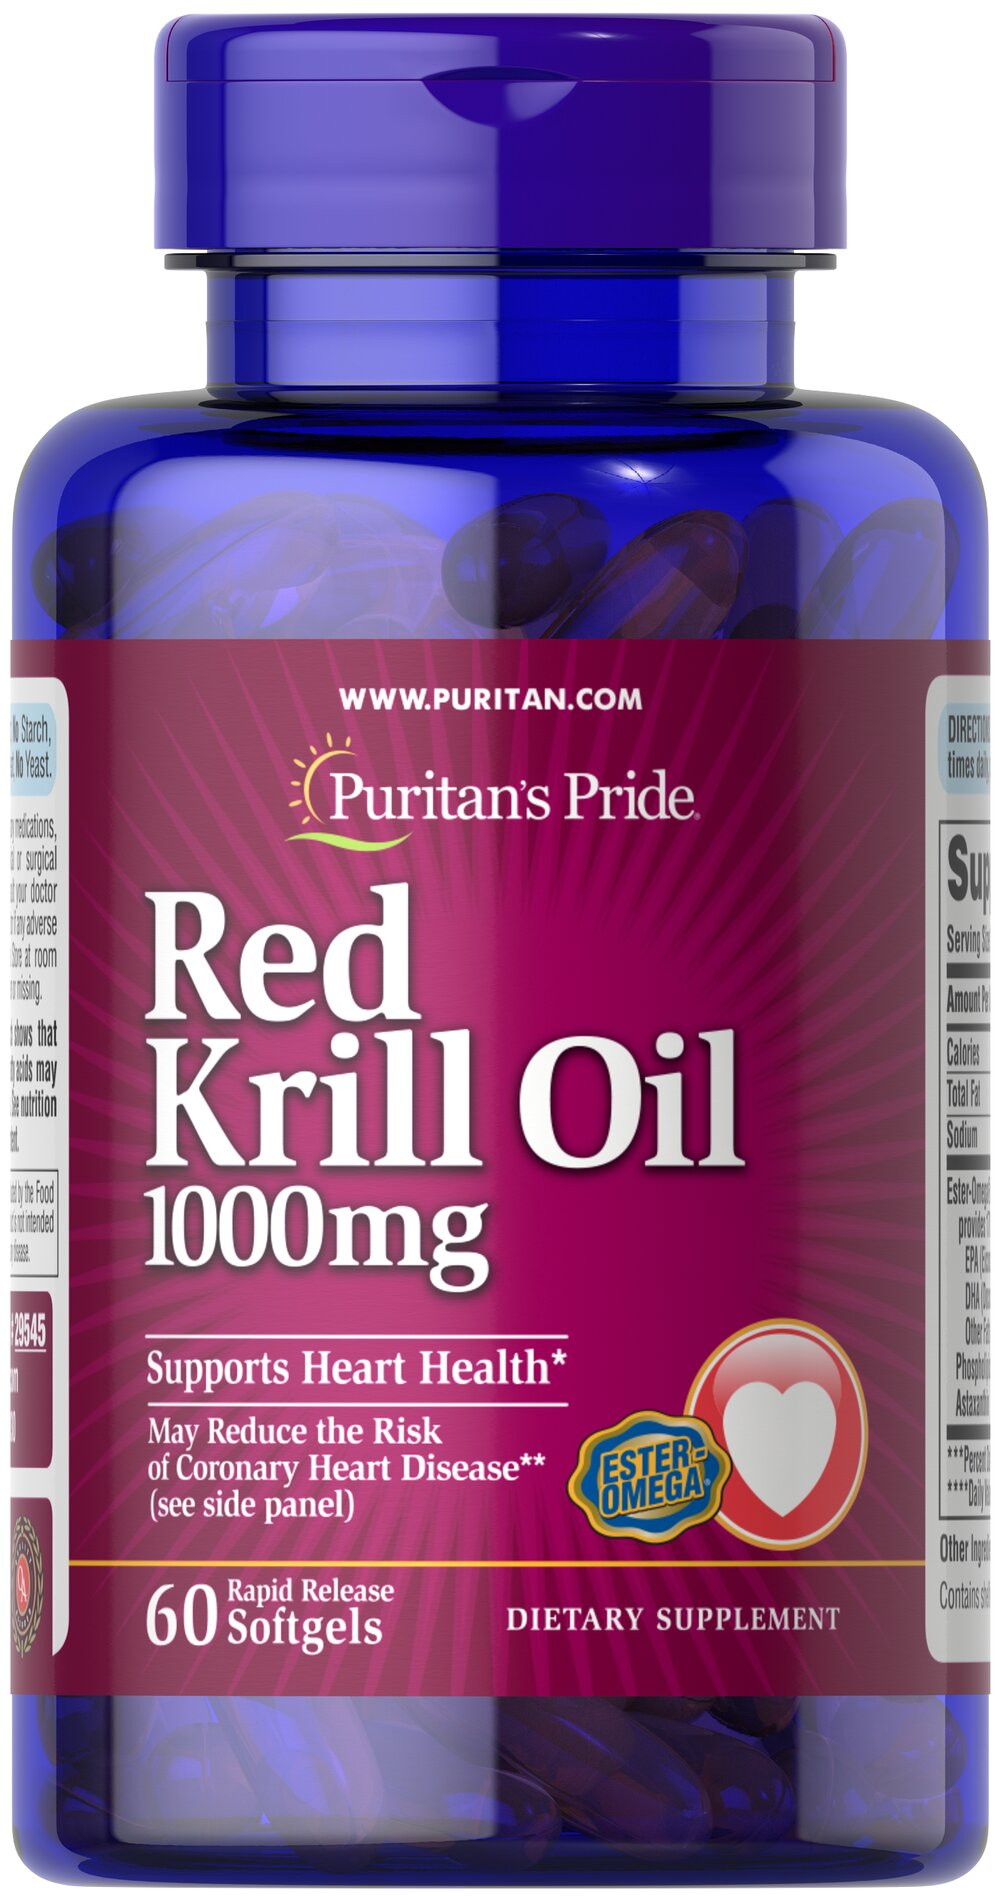 "Red Krill Oil 1000 mg <p><strong>With Naturally Occurring Astaxanthin</strong></p><p>Harvested from the icy waters of Antarctica.</p><p>May reduce the risk of coronary heart disease◊</p><p>Supports a healthy heart**</p><p>Provides you with Omega-3 fatty acids — the ""good"" fats important for cellular and metabolic health**</p><p>Rapid release softgels facilitate quick absorption</p> 60 Softgels 1000 mg $55.99"